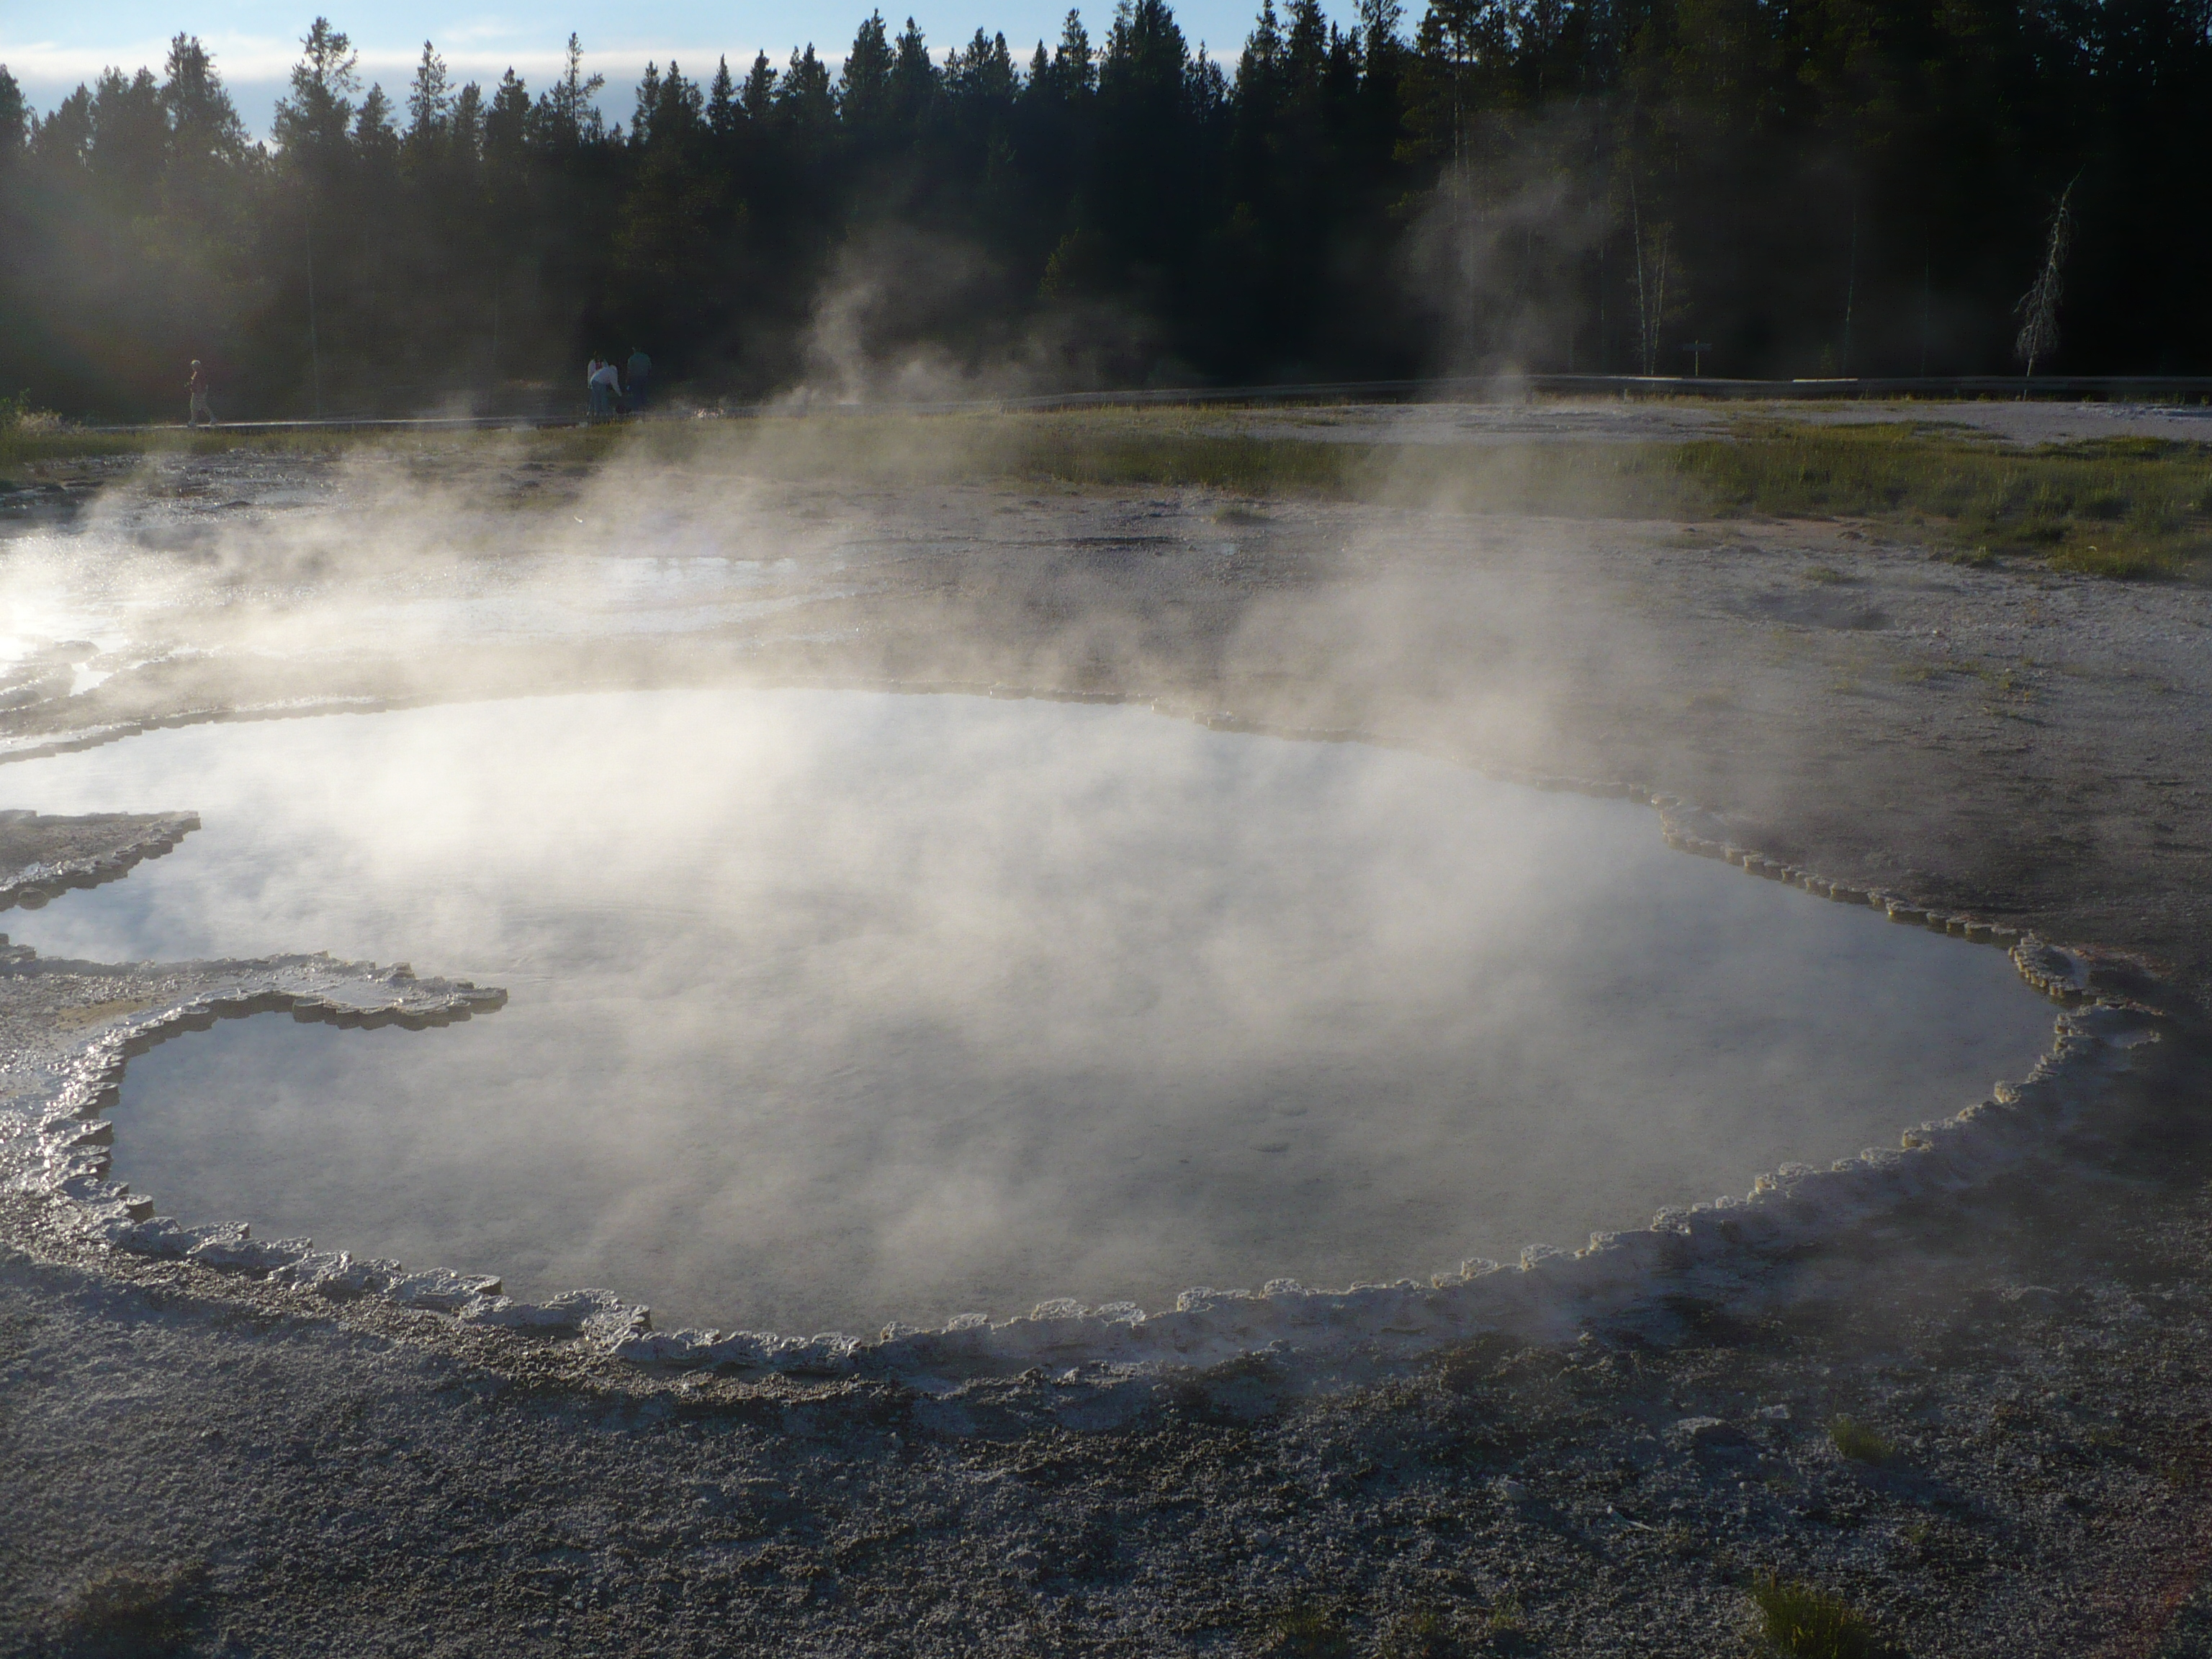 Heart Spring received its name because of the heart-like shape of the crater. It is 8x13 feet and has a depth of 16 feet.  Heart Spring has had temperature fluctuations from 150-202°F. This wide range of temperature has allowed microbial growth to form varicolored patterns. This spring is typical of many of Yellowstone's thermal springs. Nearly 10,000 thermal features exist in Yellowstone and many are alkaline hot springs similar to Heart Spring in size and appearance. One feature which distinguishes each is the bright, colorful cyanobacteria and algae which grow along the edge of run-off channels. Each spring has its unique pattern. Photo: Nurin Merchant. Copyright.